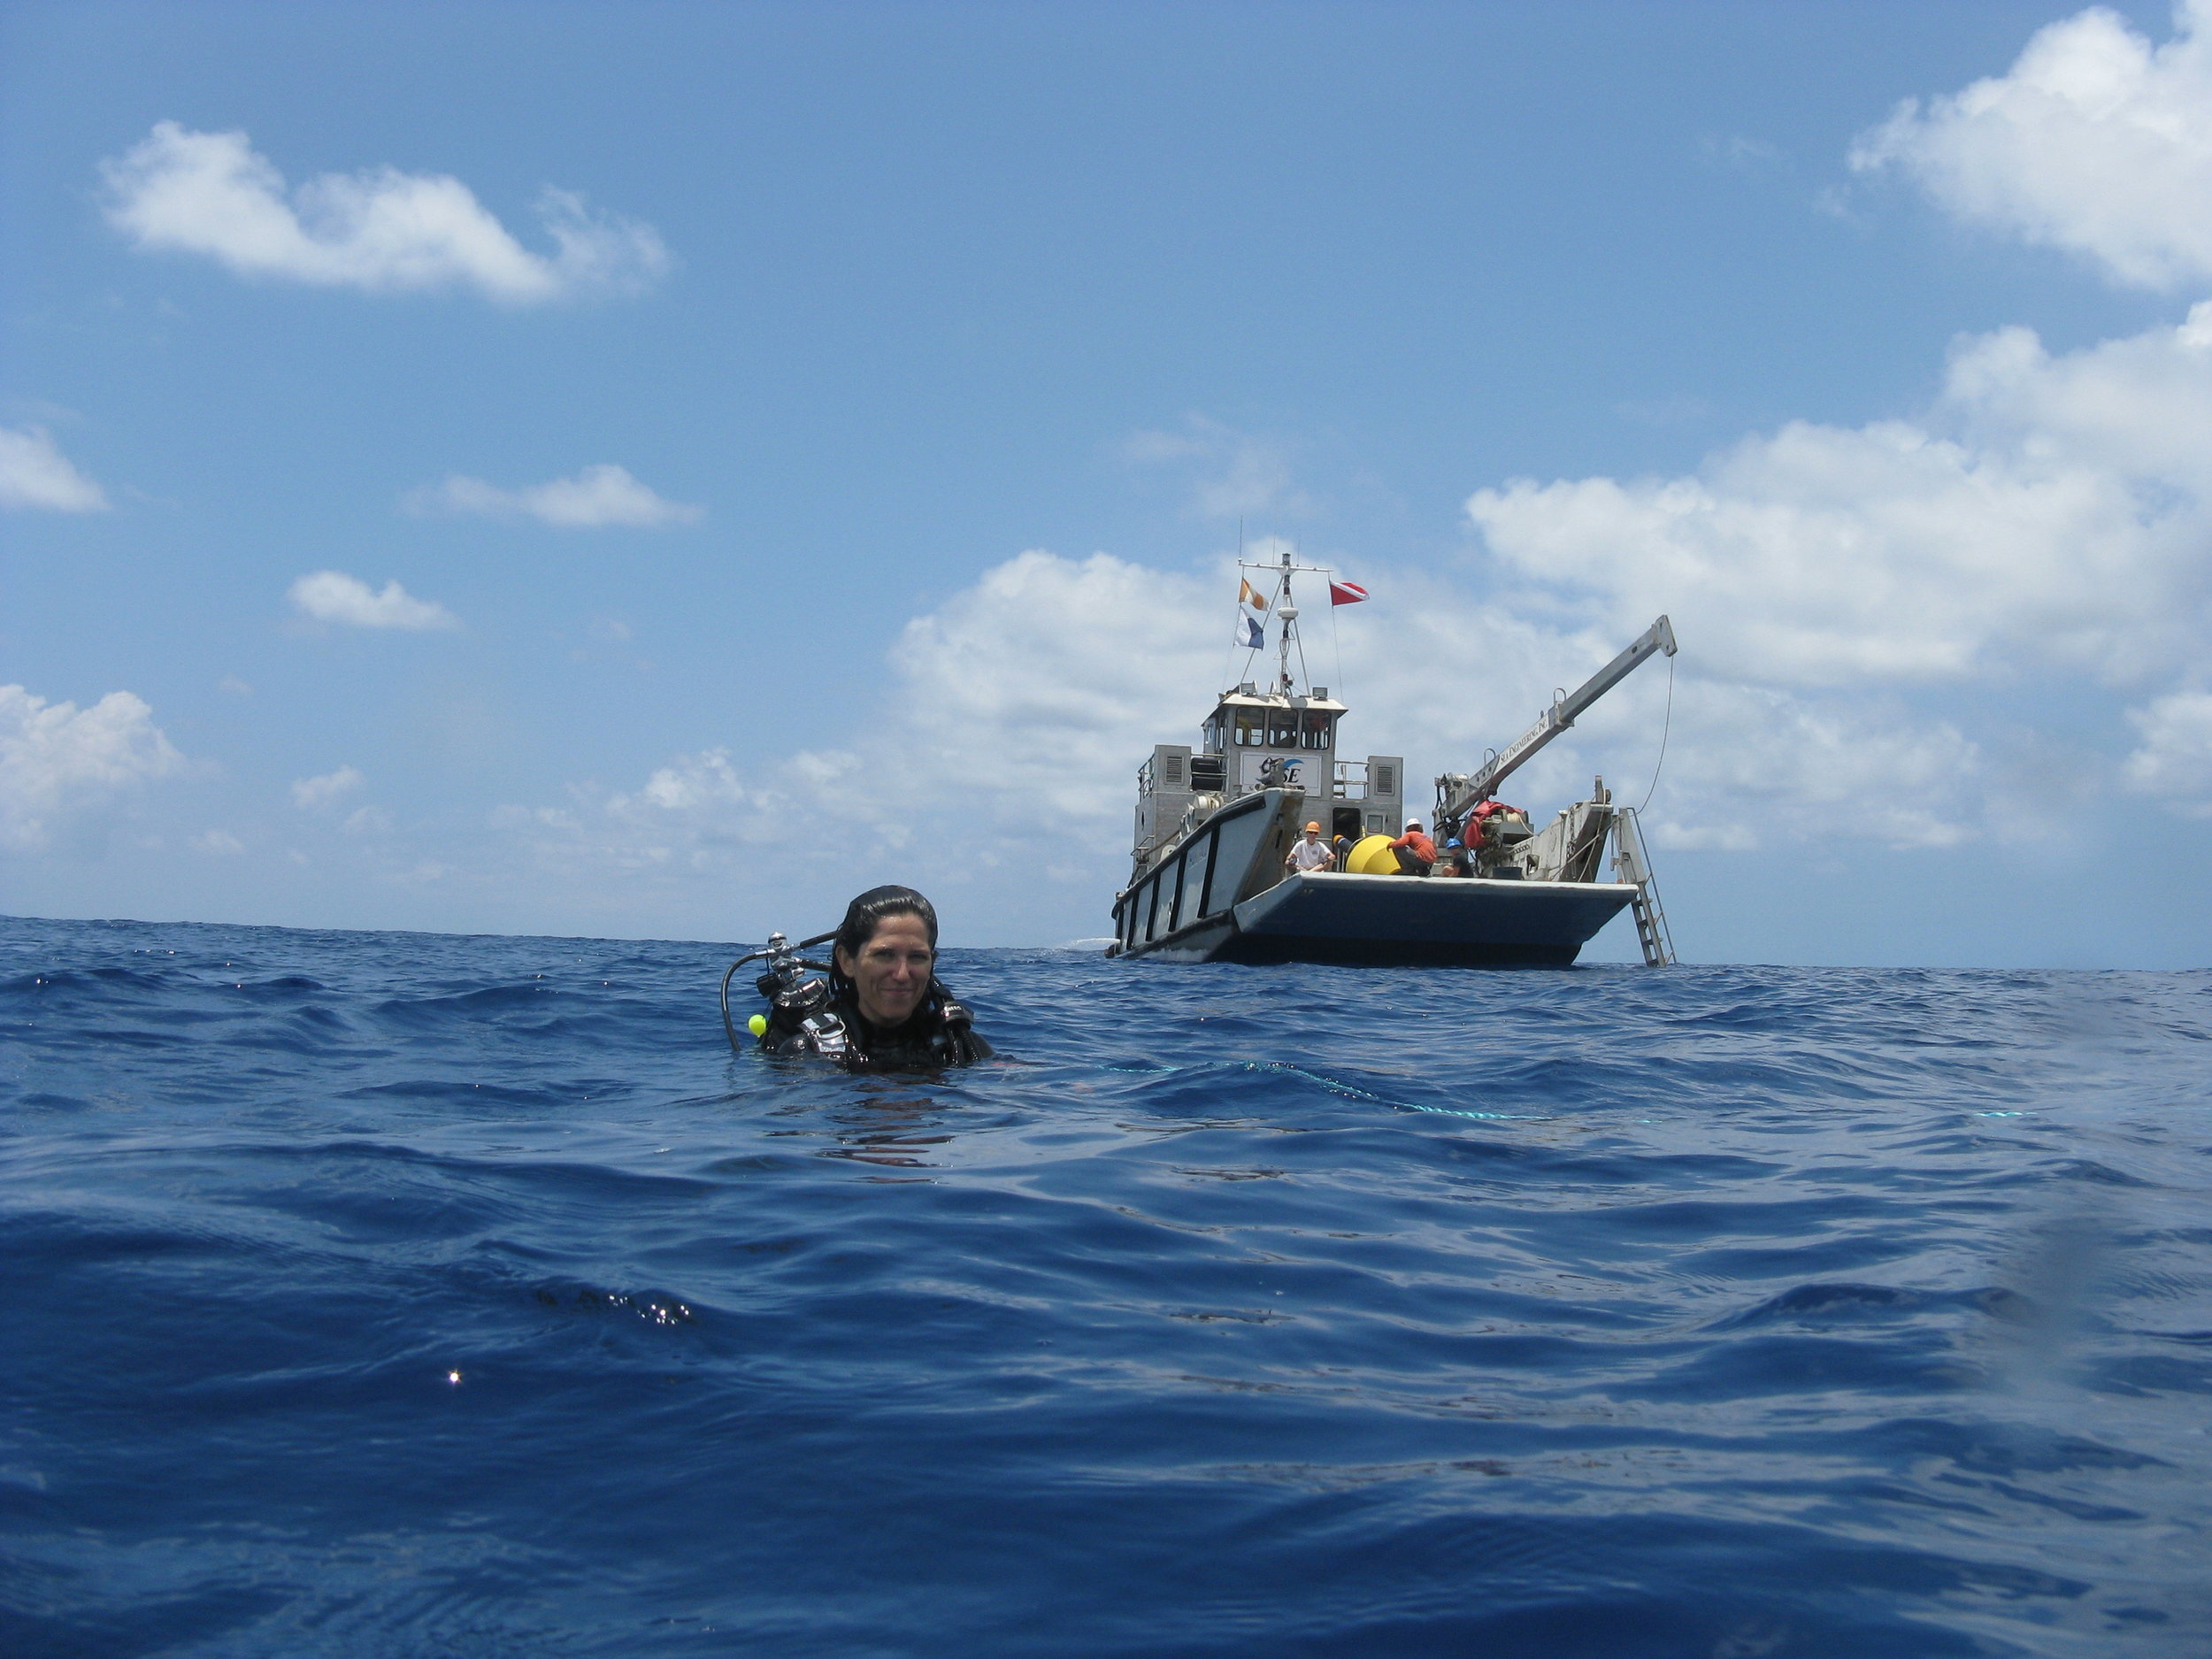 Mooring recovery off the west coast of Oʻahu